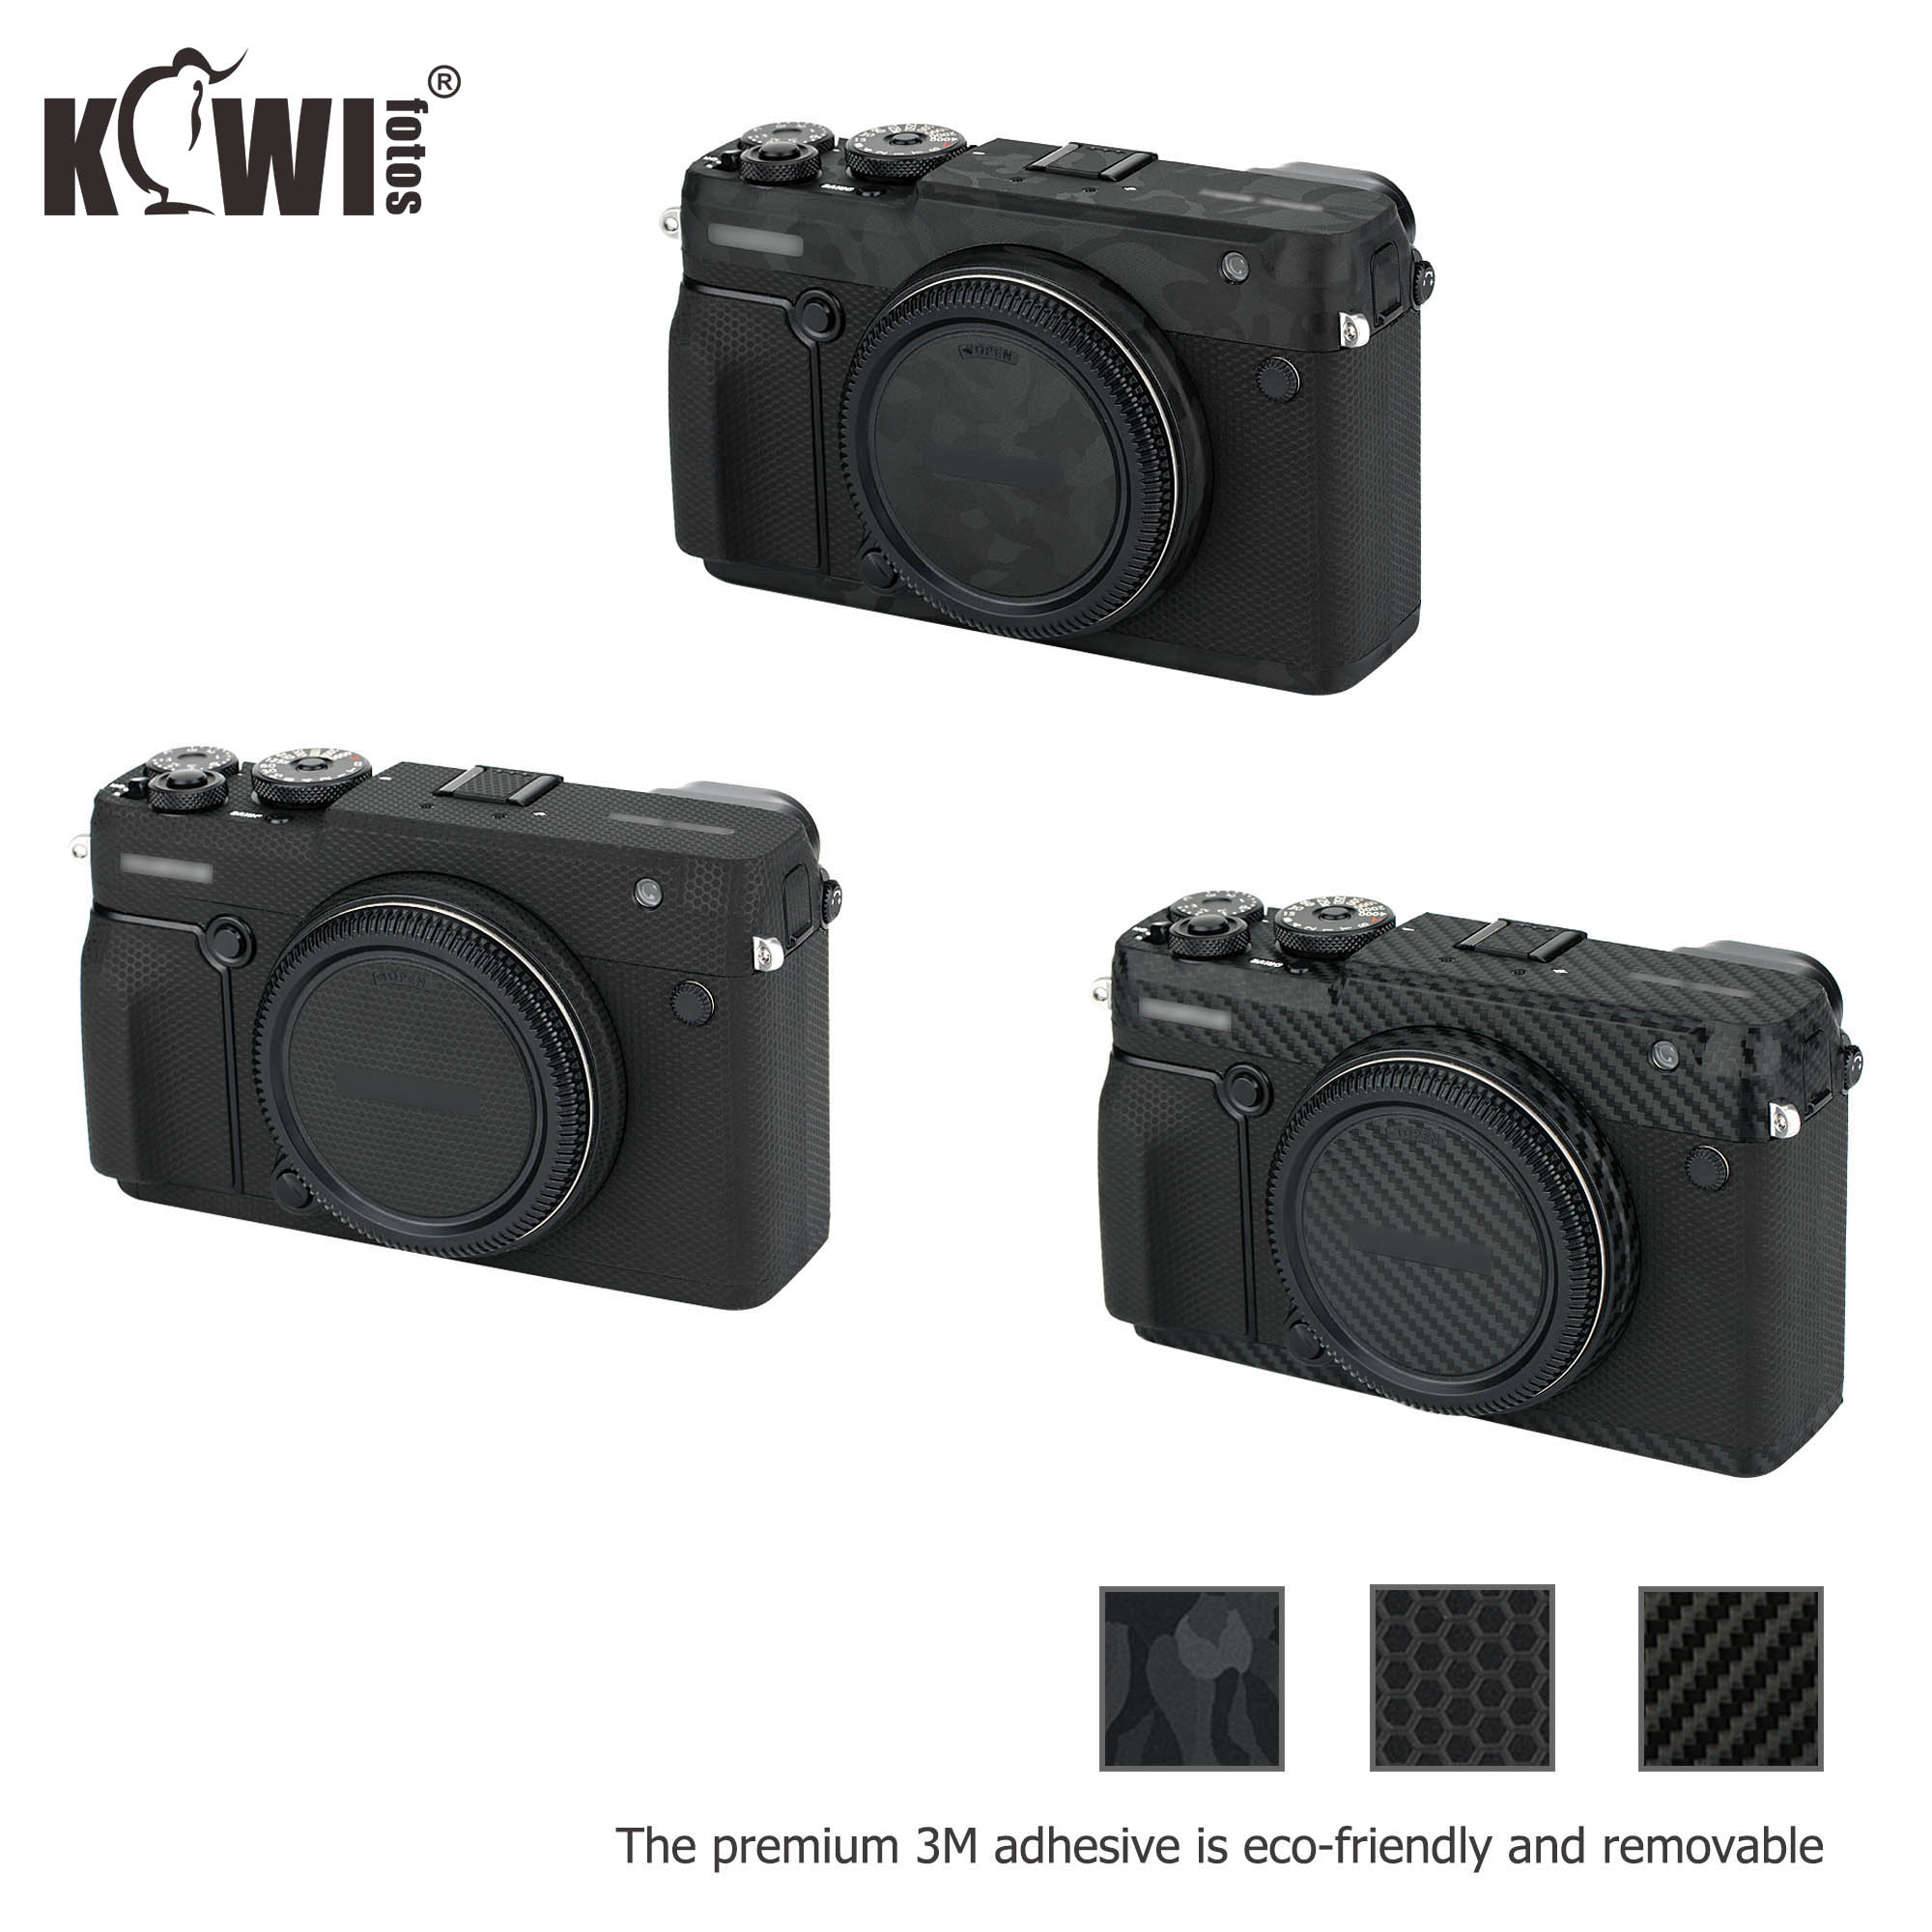 Kiwi Anti-Scratch Camera Body Sticker Protective Skin Film Kit for Fuji Fujifilm GFX 50R Anti-Slide Skin Cover Shadow Black